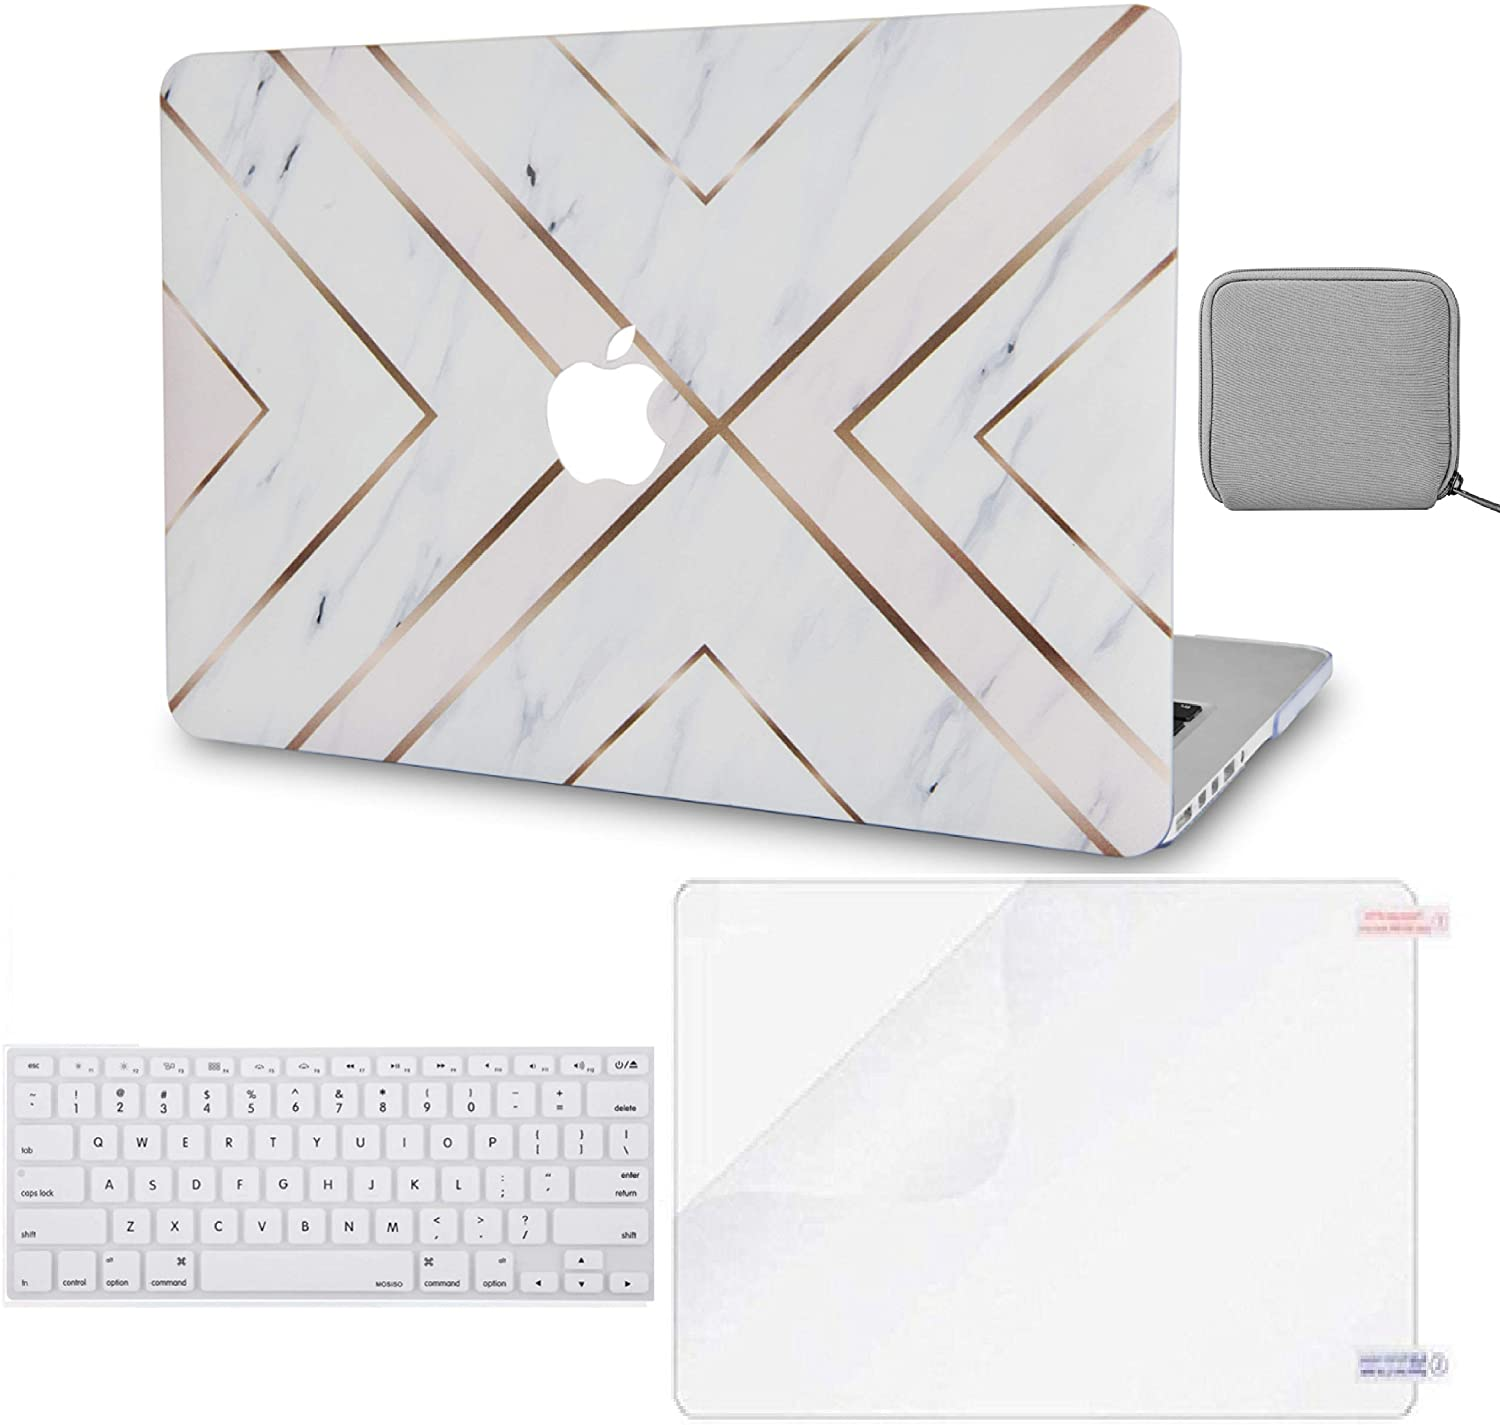 LuvCase 4 in 1 LaptopCase forMacBook Pro 16 Touch Bar (2020/2019) A2141 HardShellCover, Pouch, Keyboard Cover & Screen Protector(White Marble Gold Stripes)